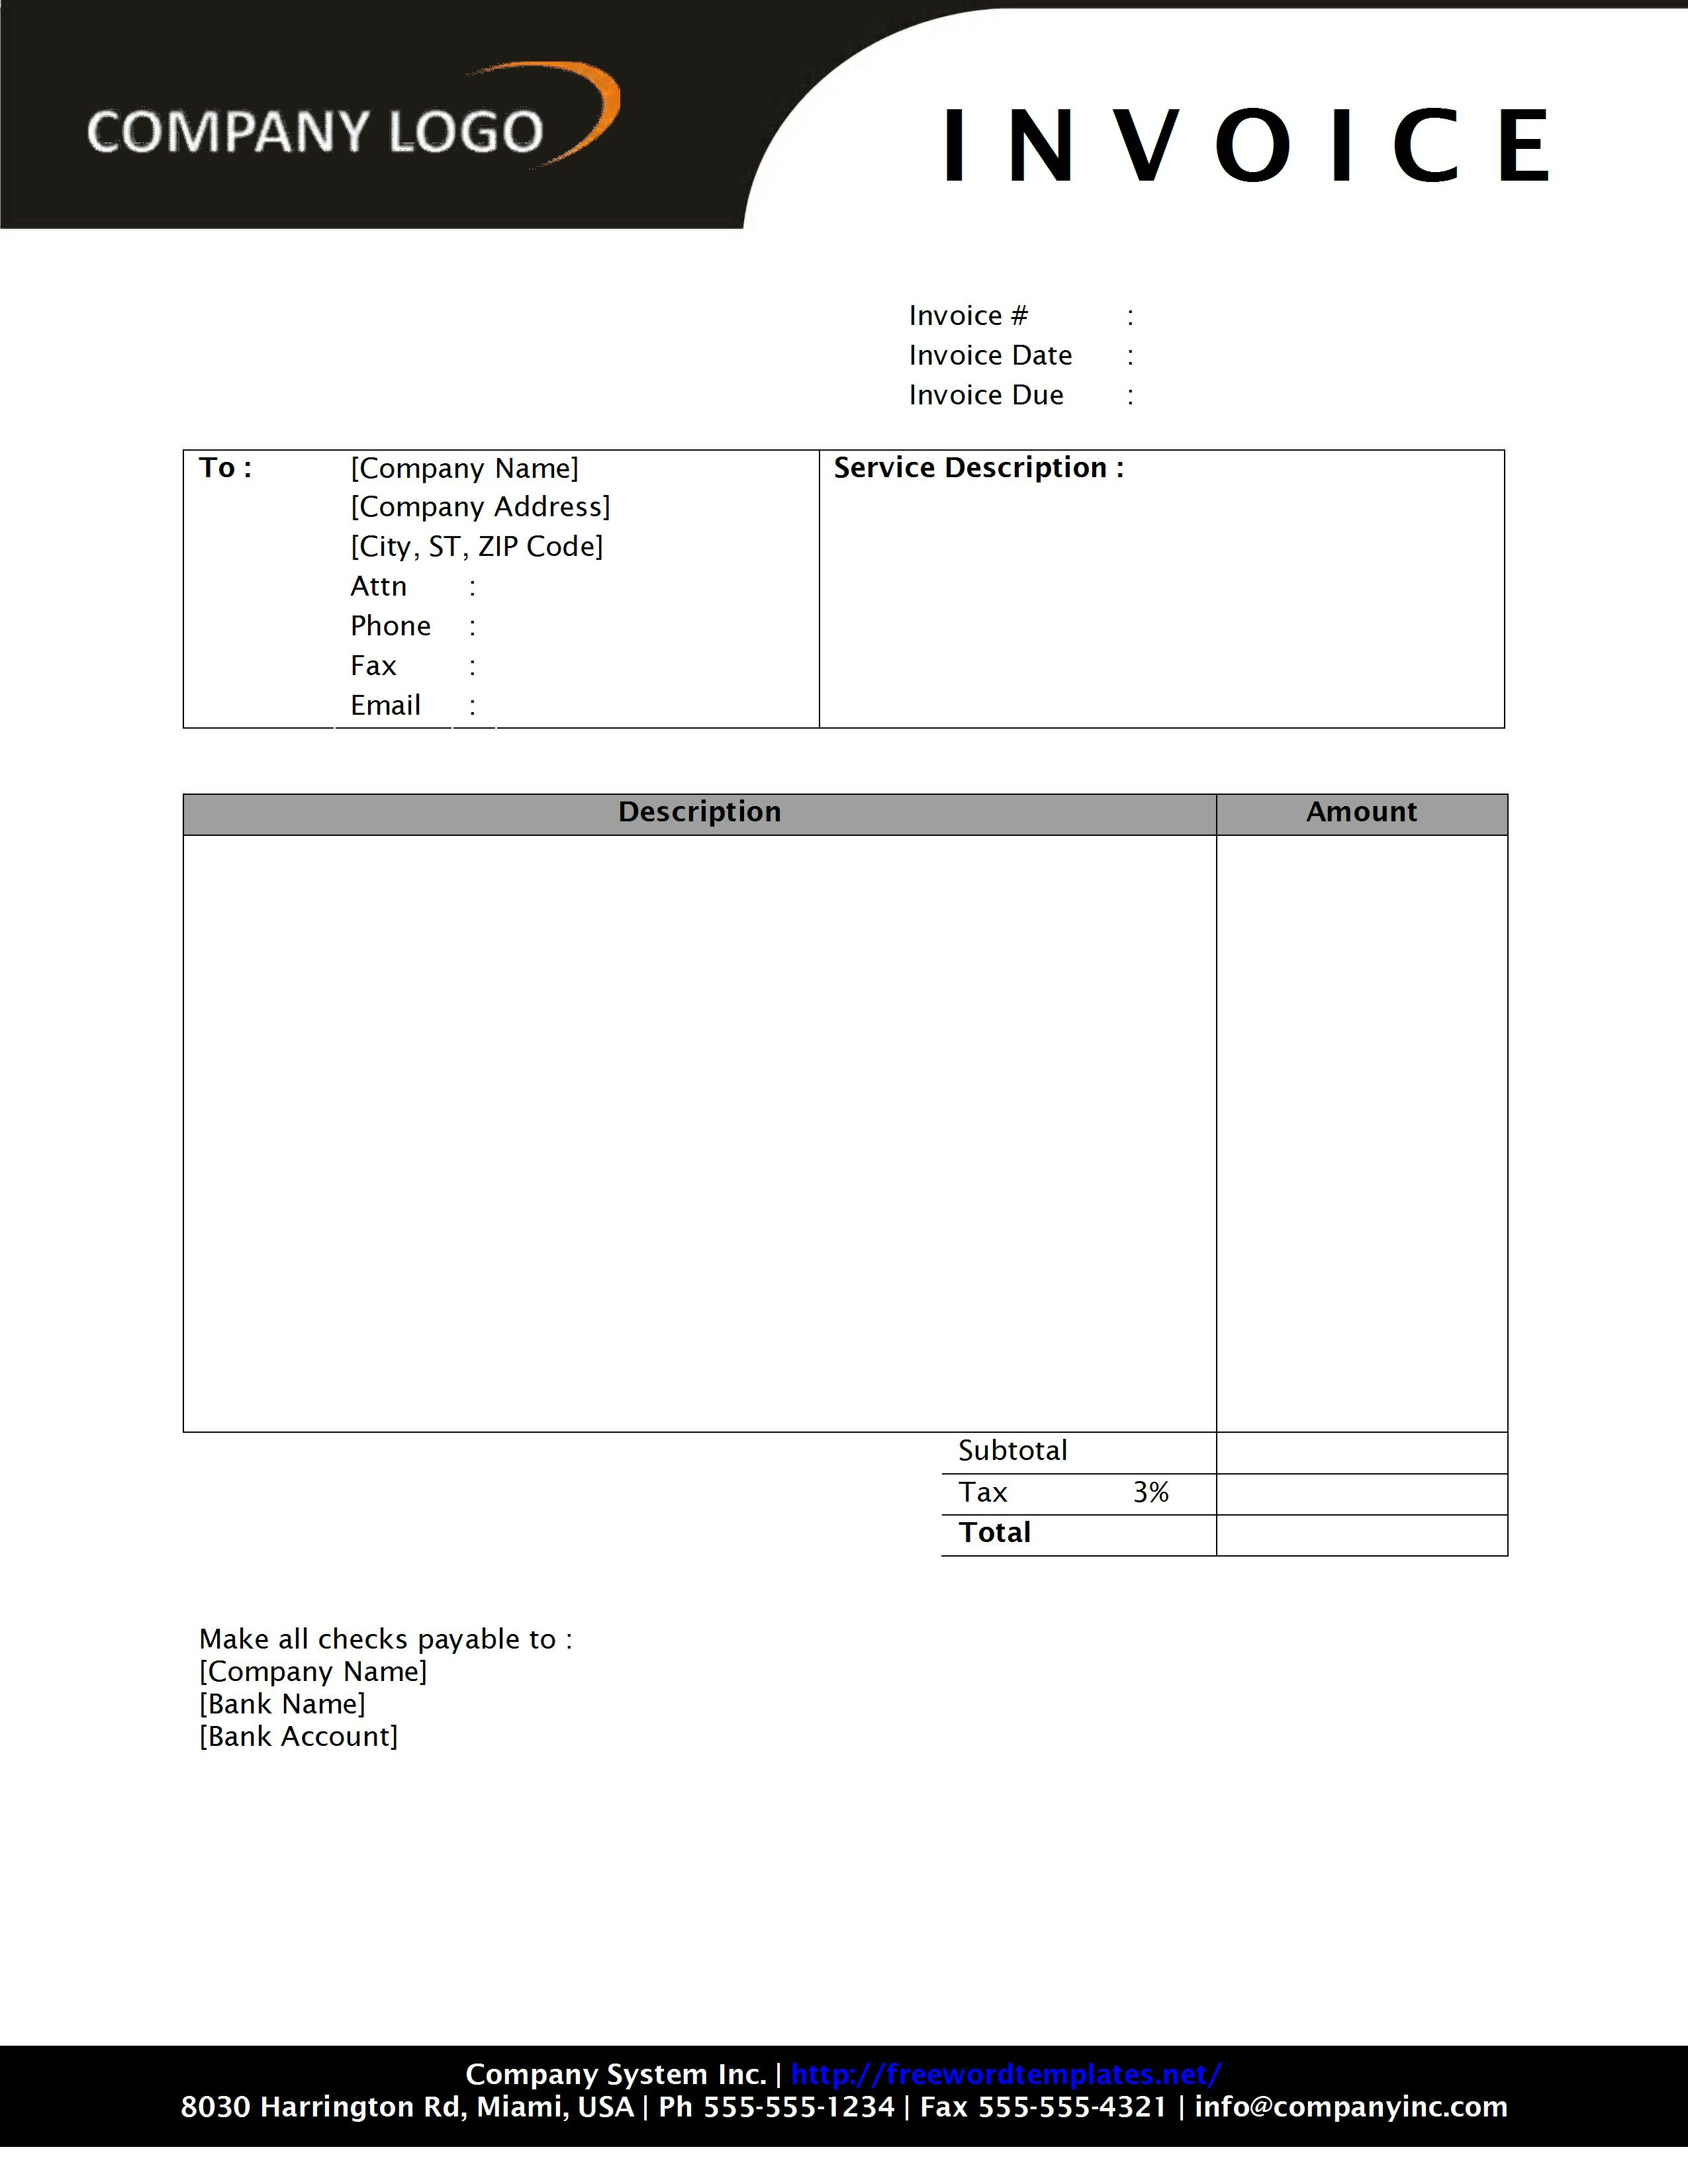 rental invoice wordtemplates net payment receipt middot general service invoice